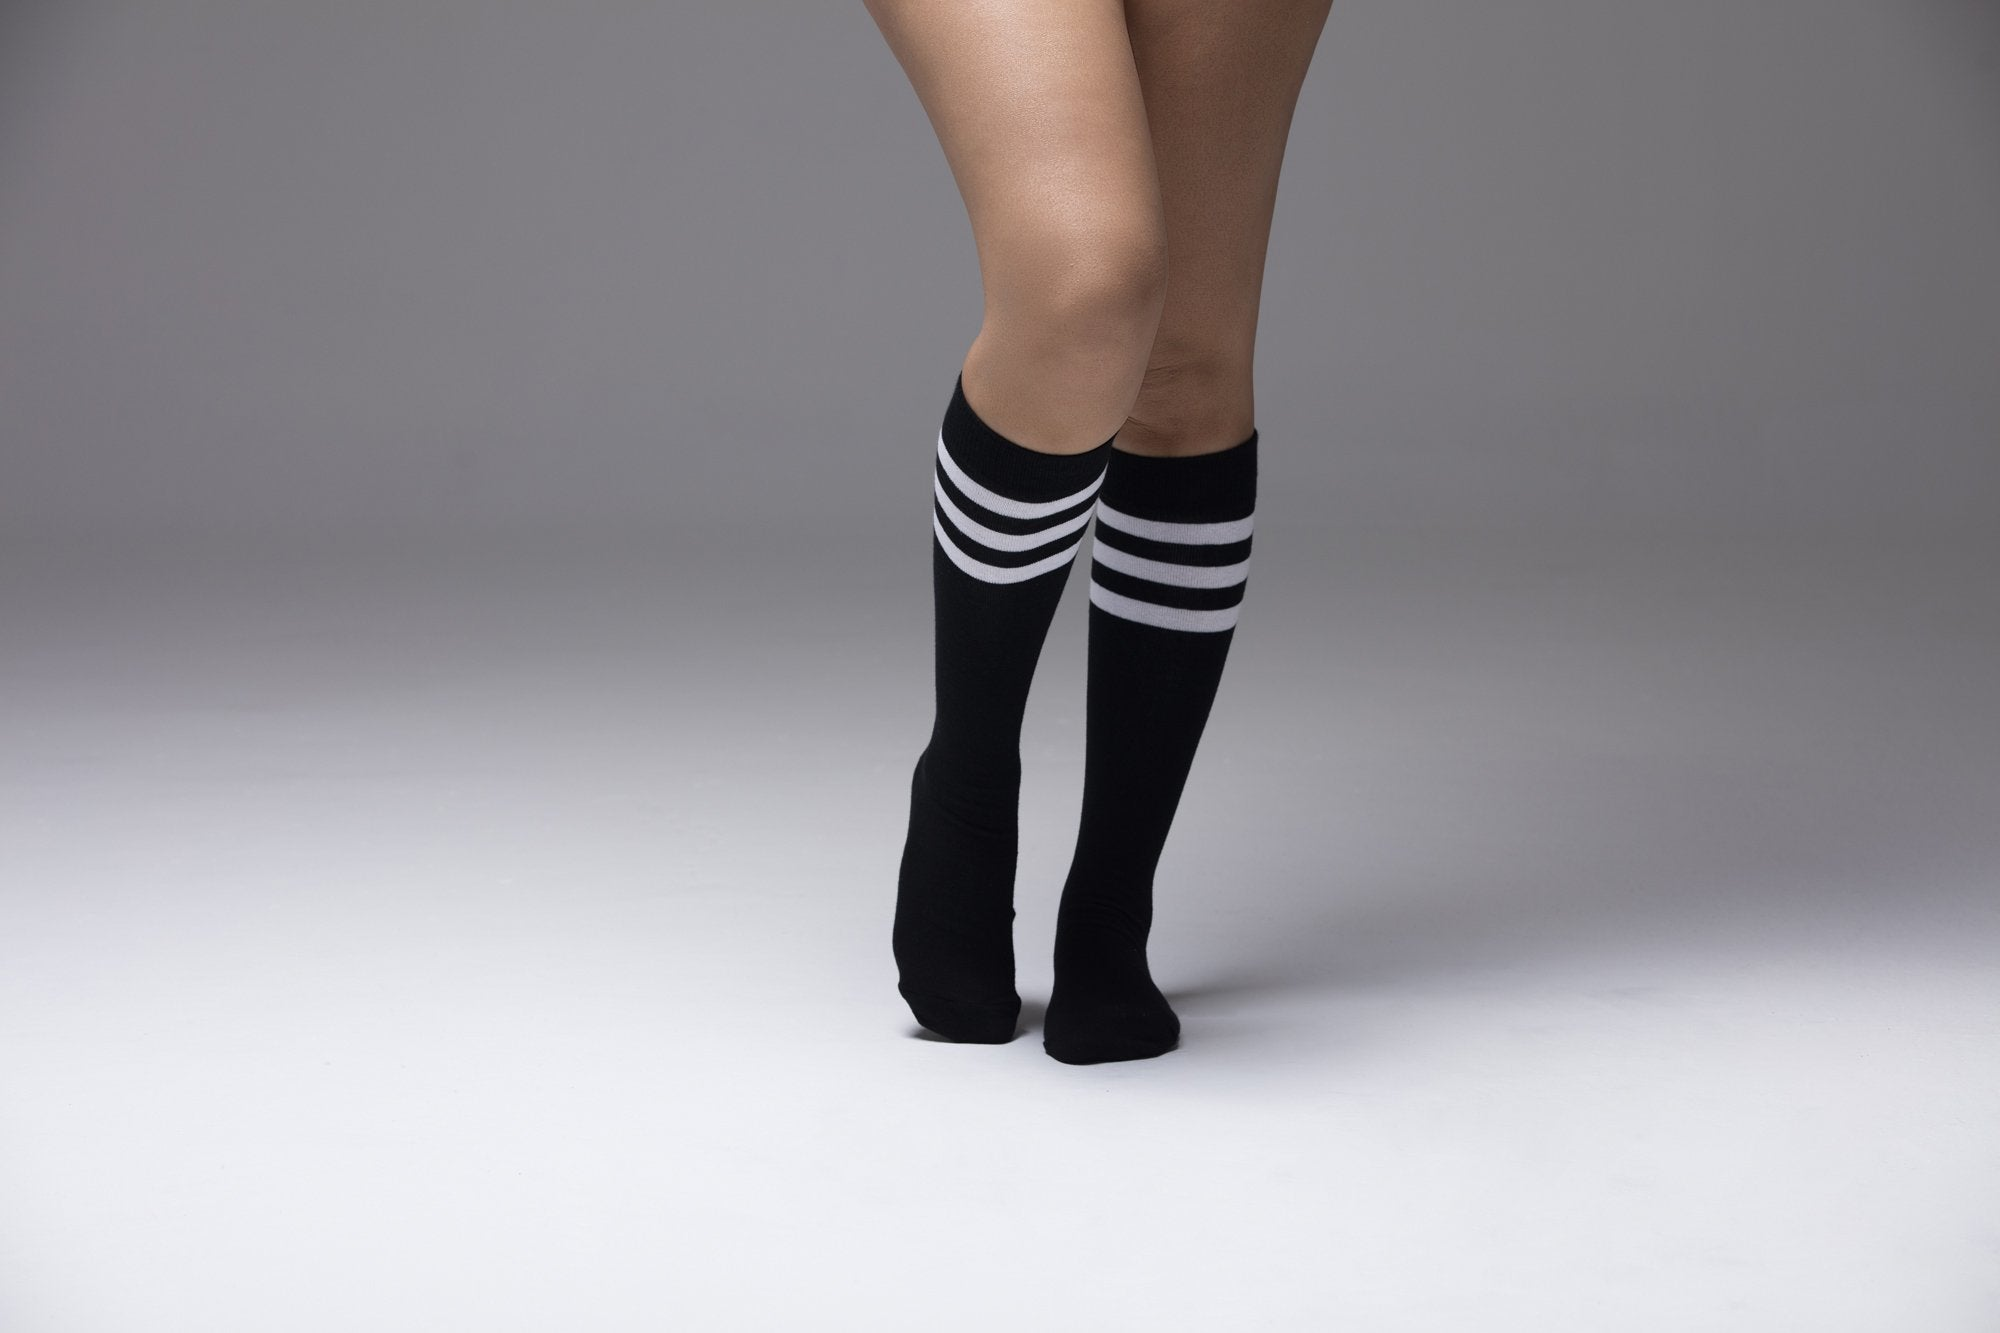 Women's Darkest Stripe Knee High Socks